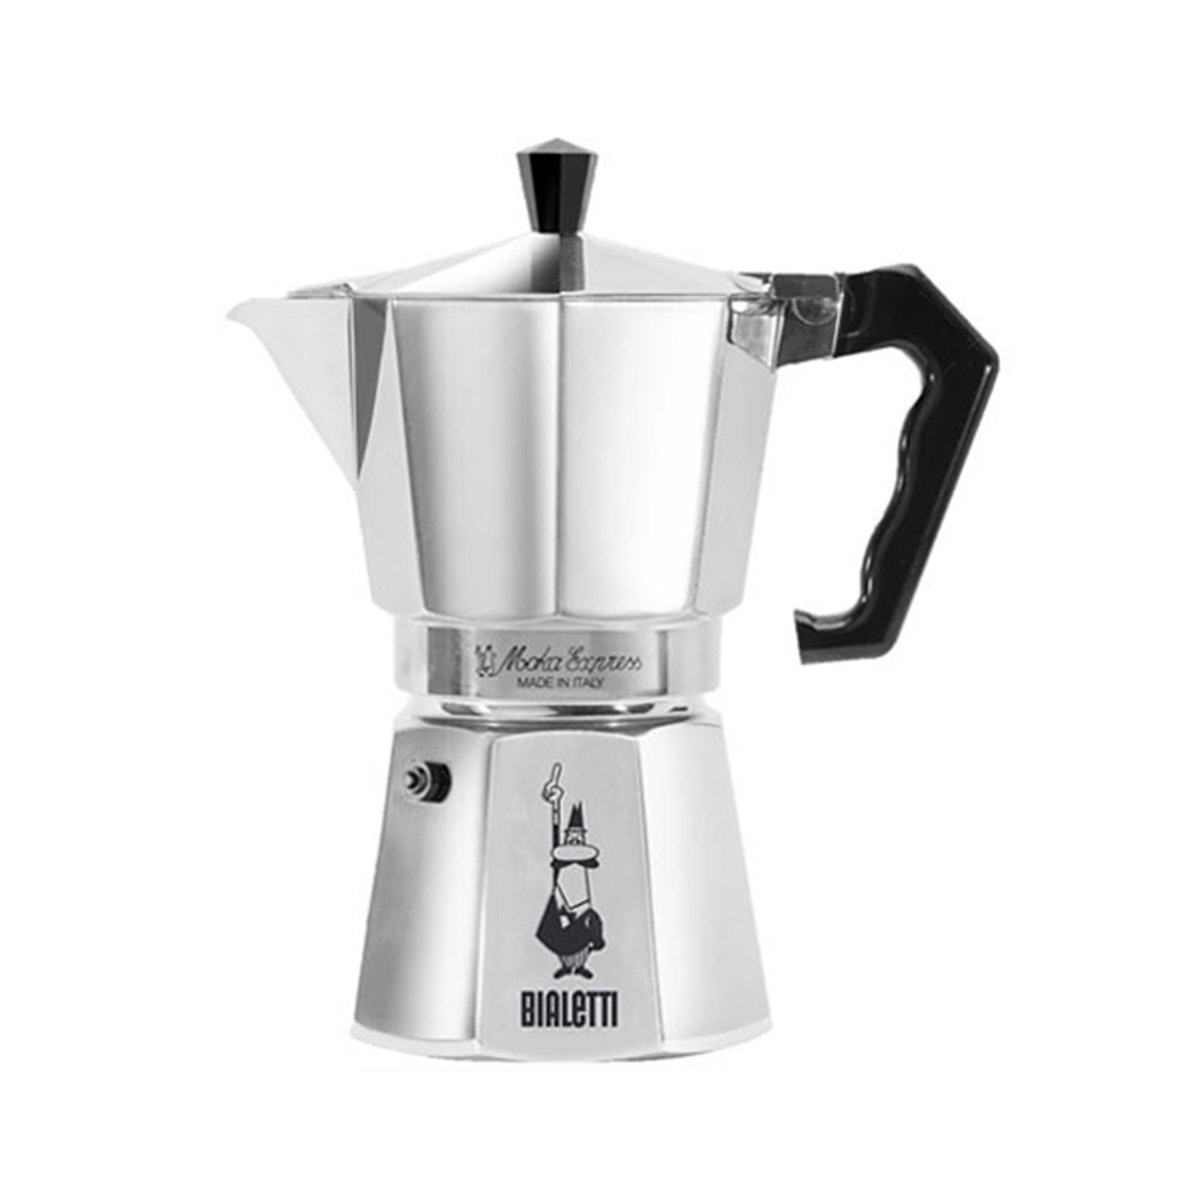 Bialetti Moka Express Limited Edition 6 Cups